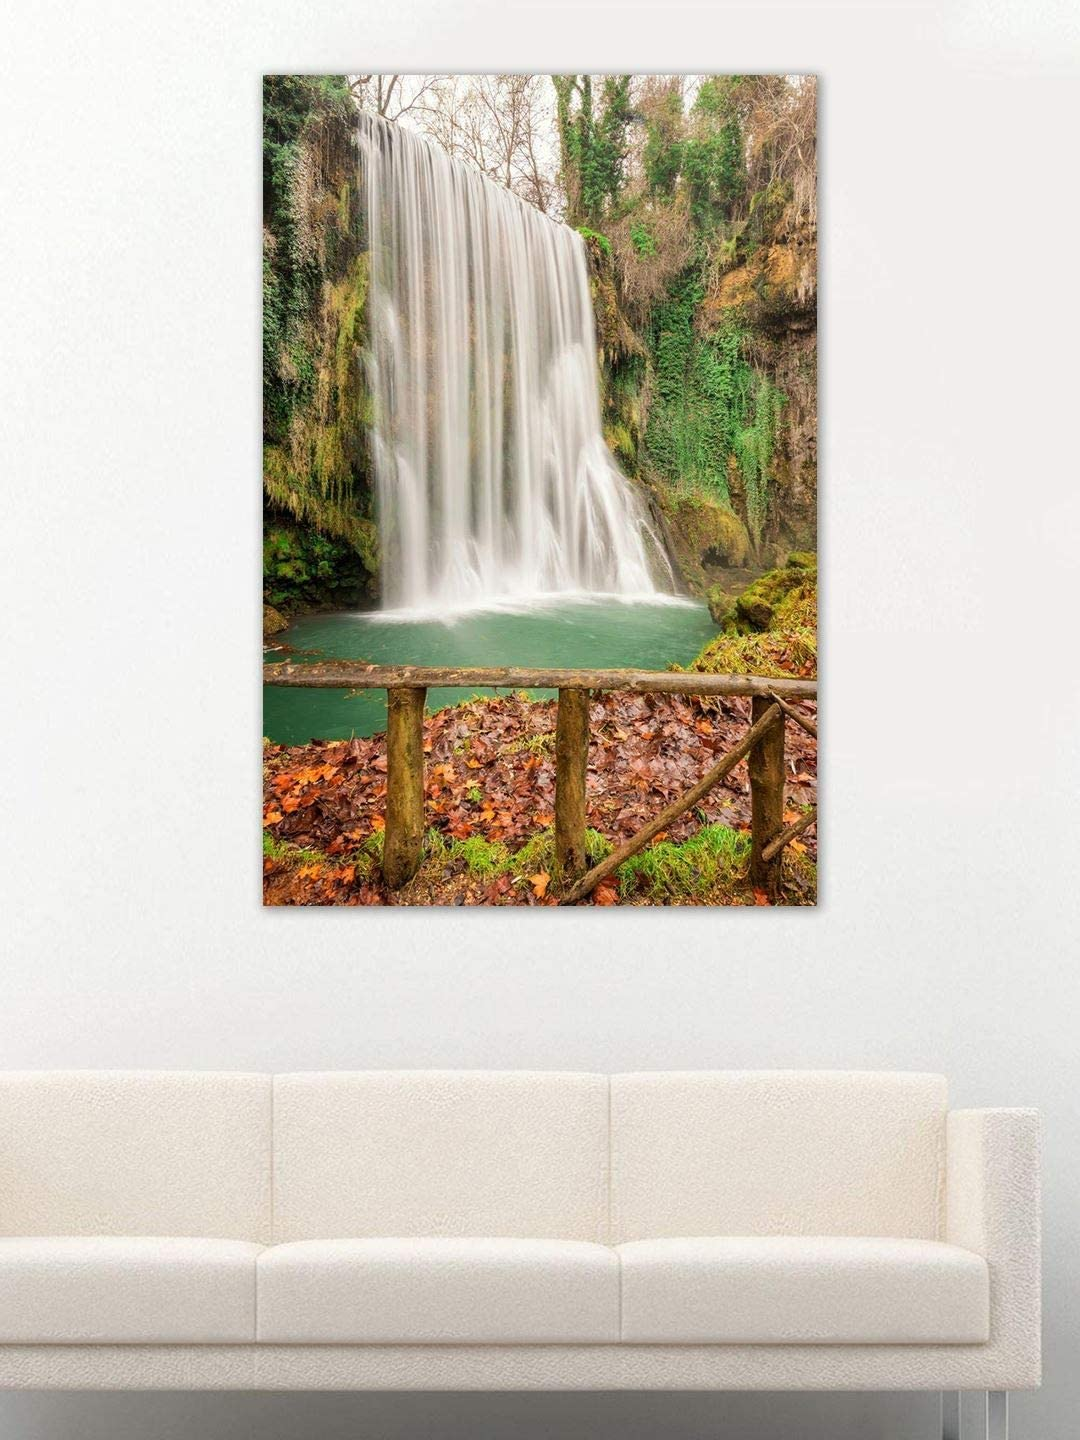 999Store Wooden Framed Printed Waterfall 爆安プライス Canvas 市販 Forest Painting